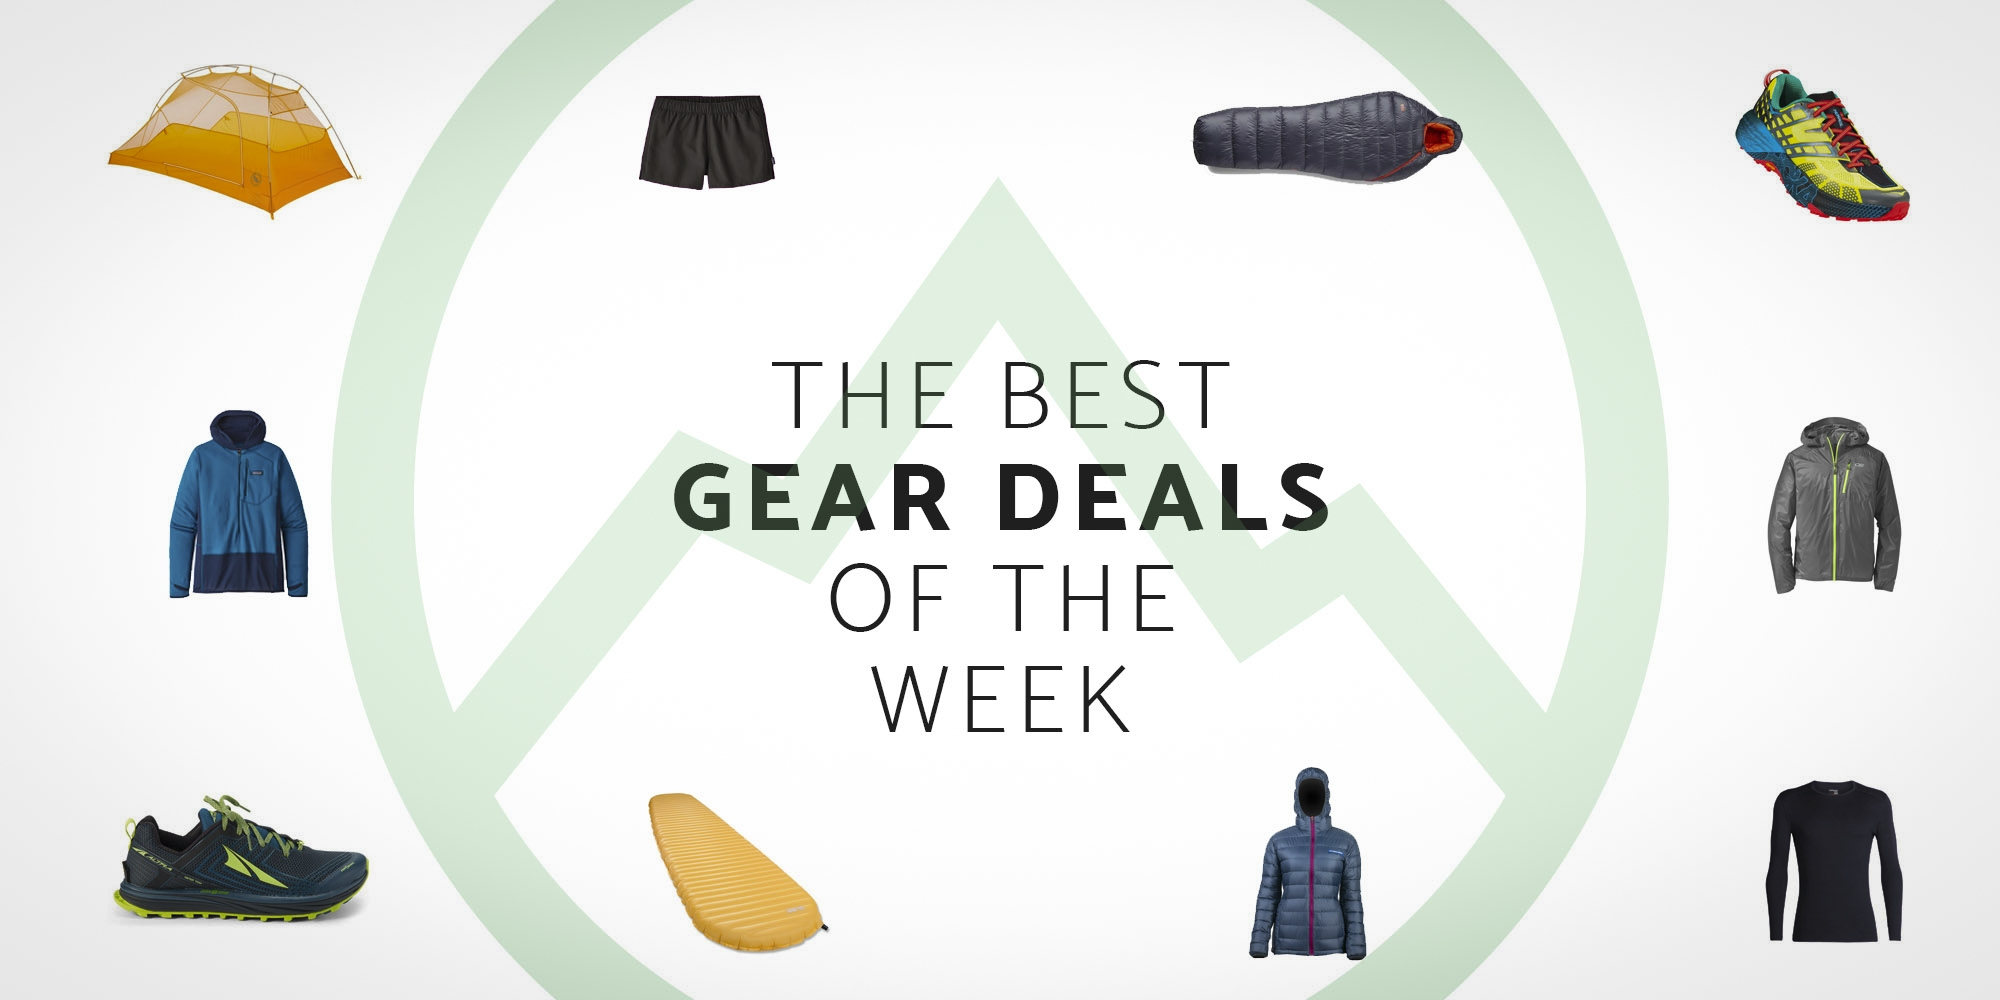 The Best Outdoor Gear Deals of the Week: Week of 4/15